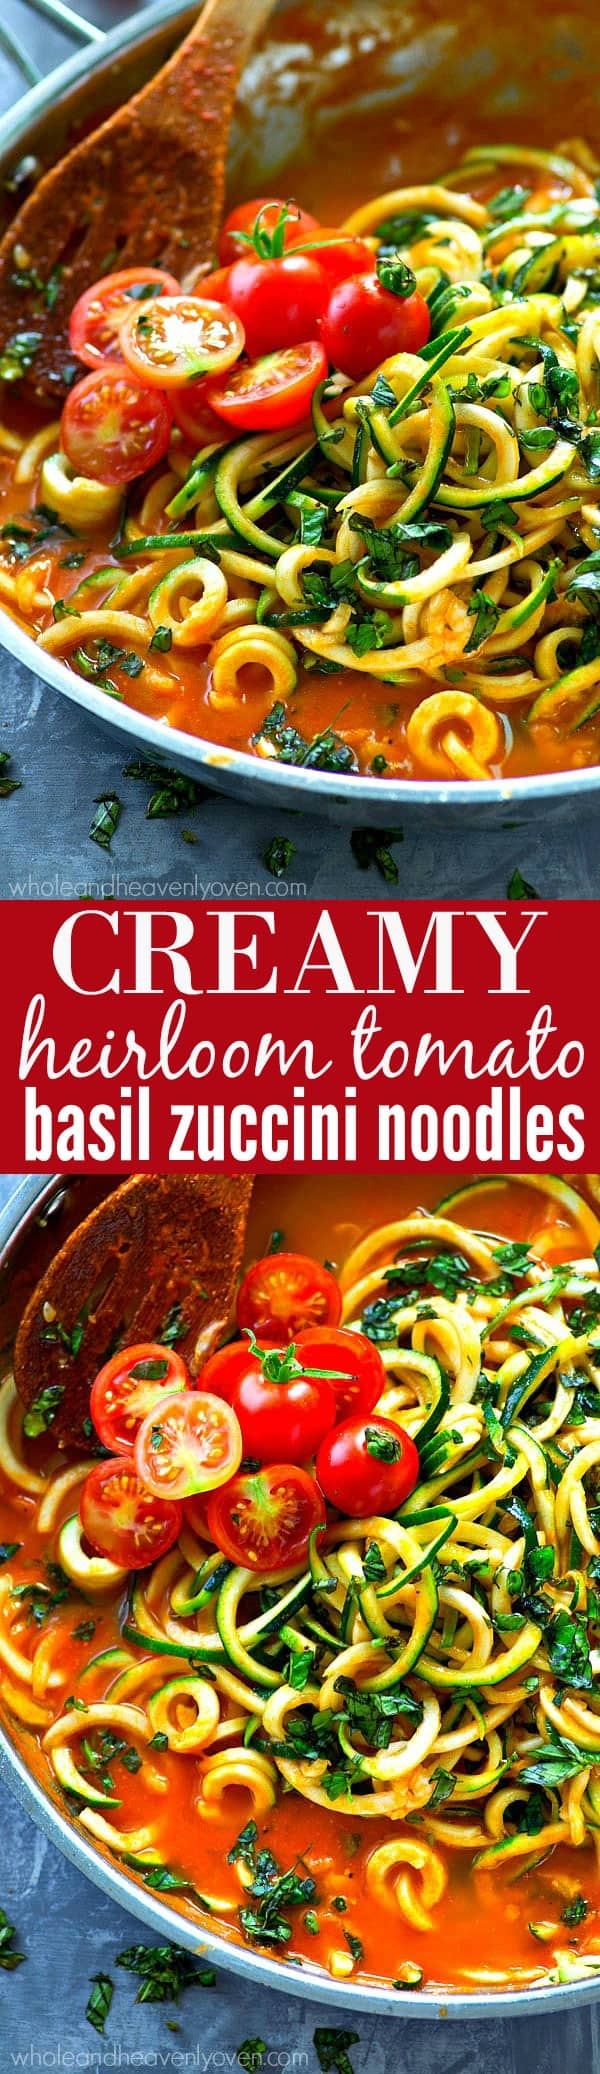 A rich and flavorful made-from-scratch heirloom tomato sauce is the secret to what makes these zucchini noodles SO good! No one would ever guess it's ready in only 20 minutes with a handful of ingredients!